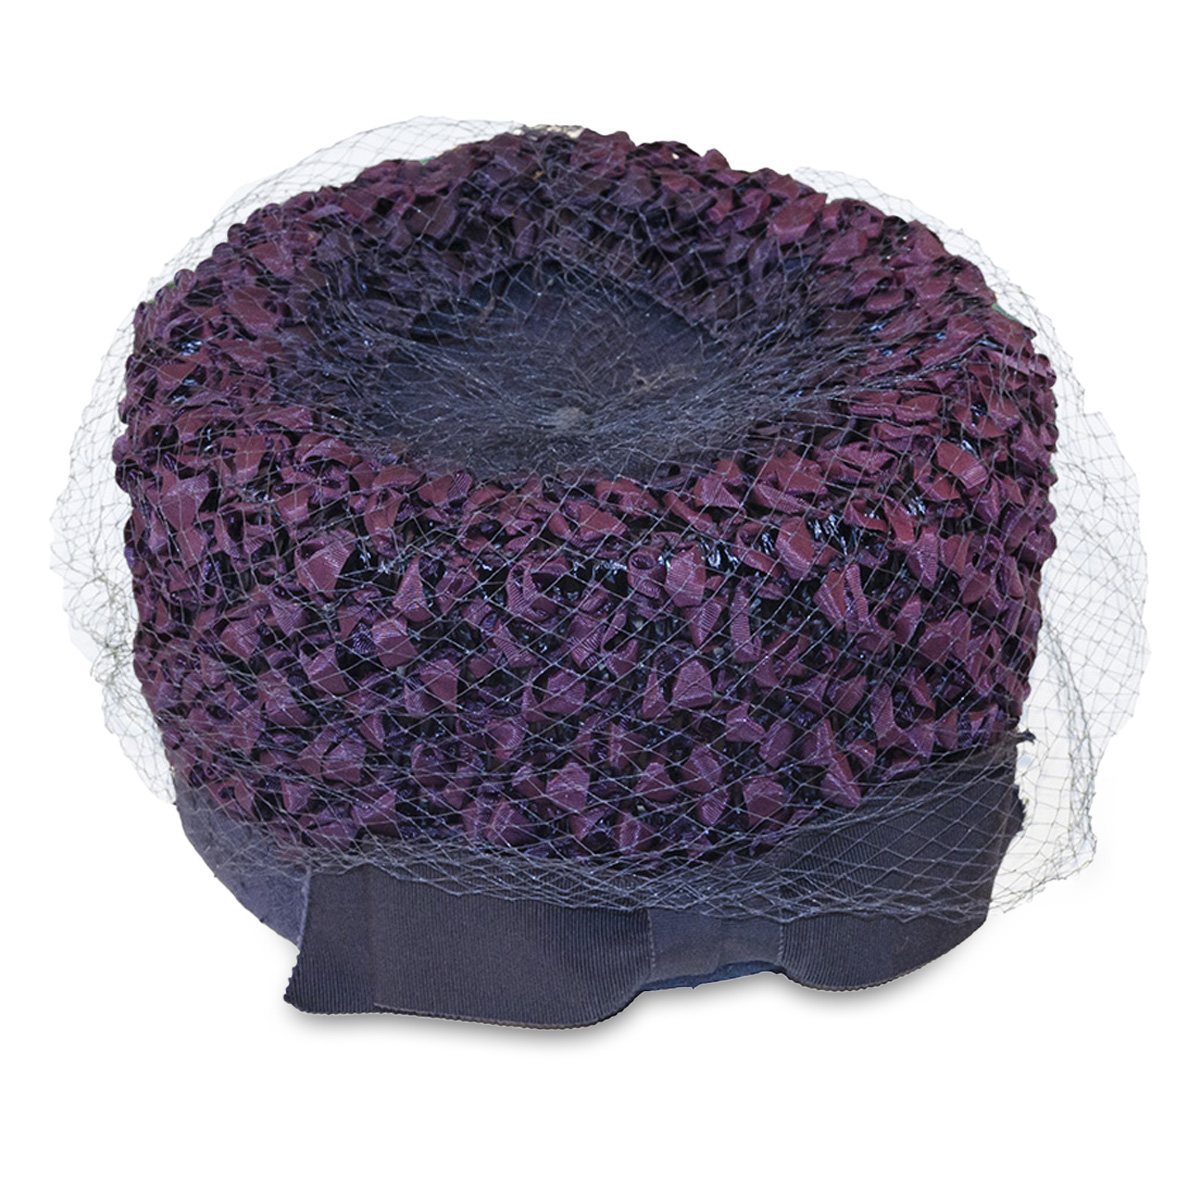 hat with netting